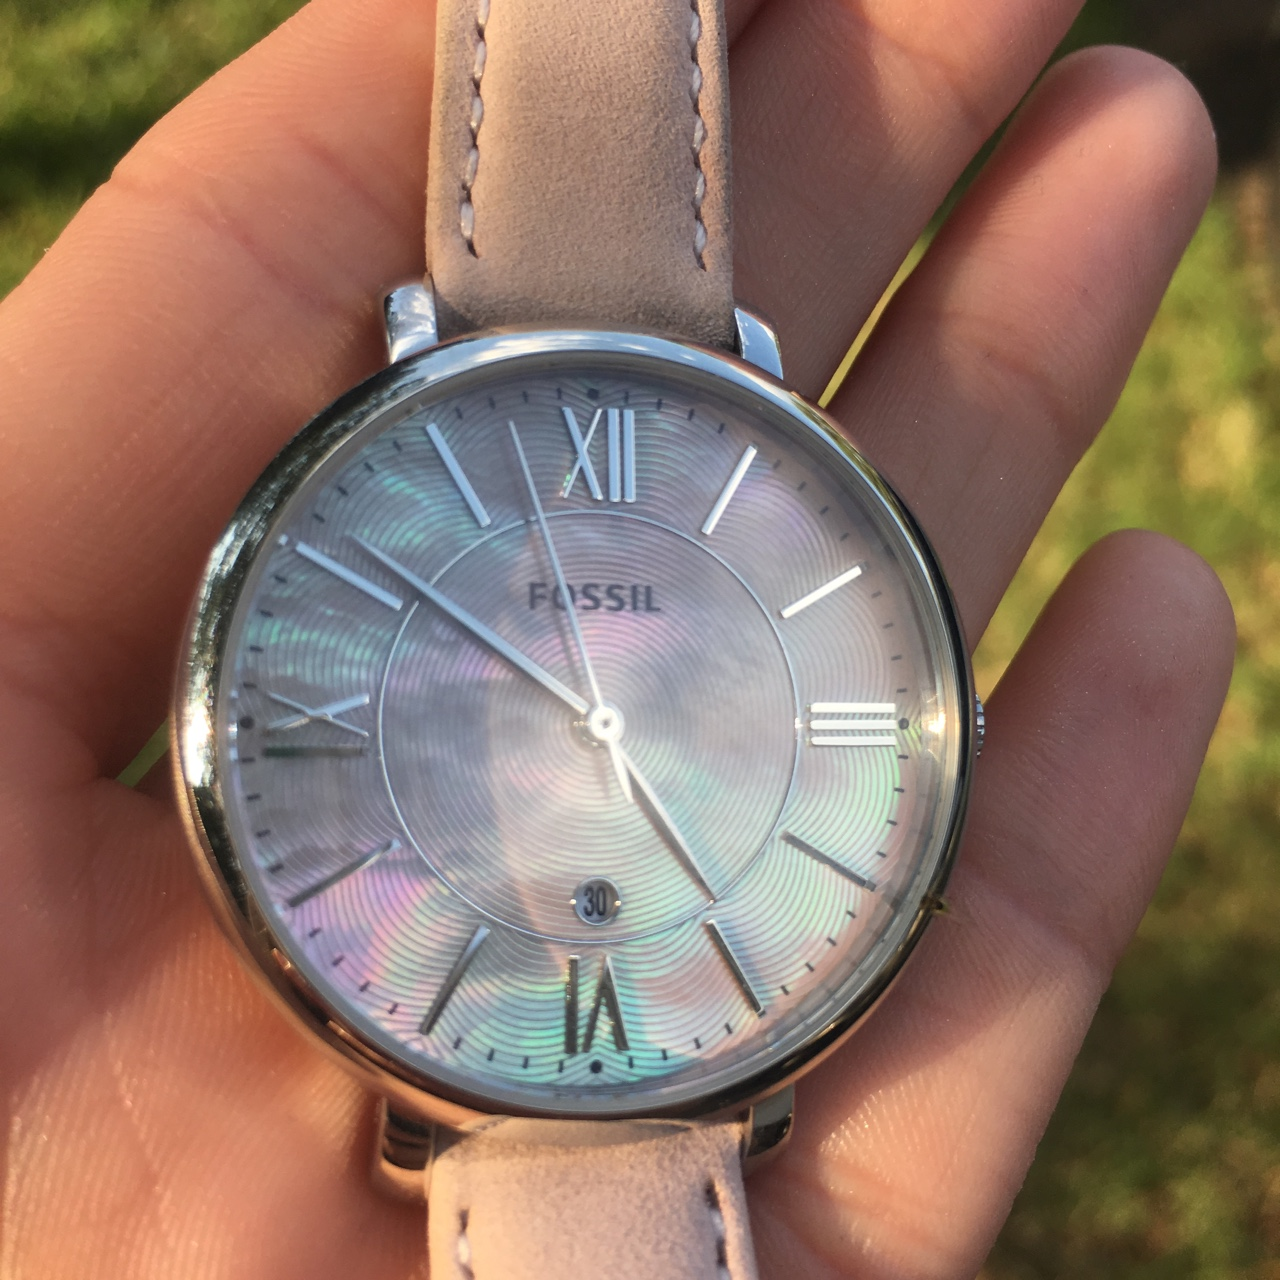 Women's fossil watch  Blush strap and pearlescent    - Depop